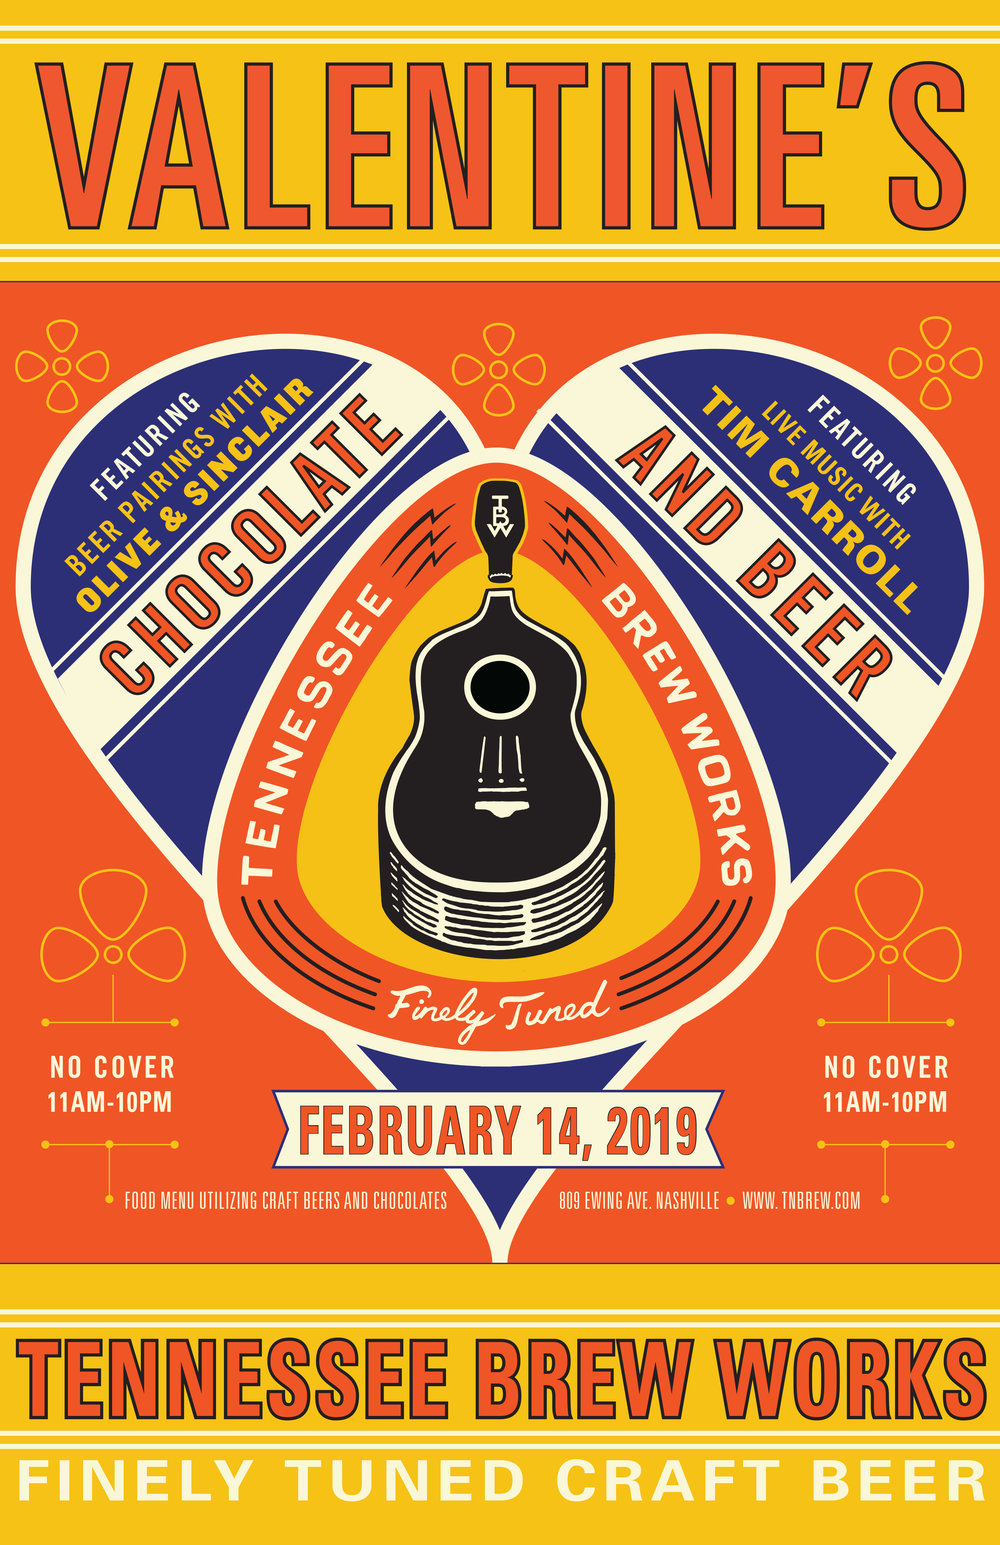 Valentine's at Tennessee Brew Works